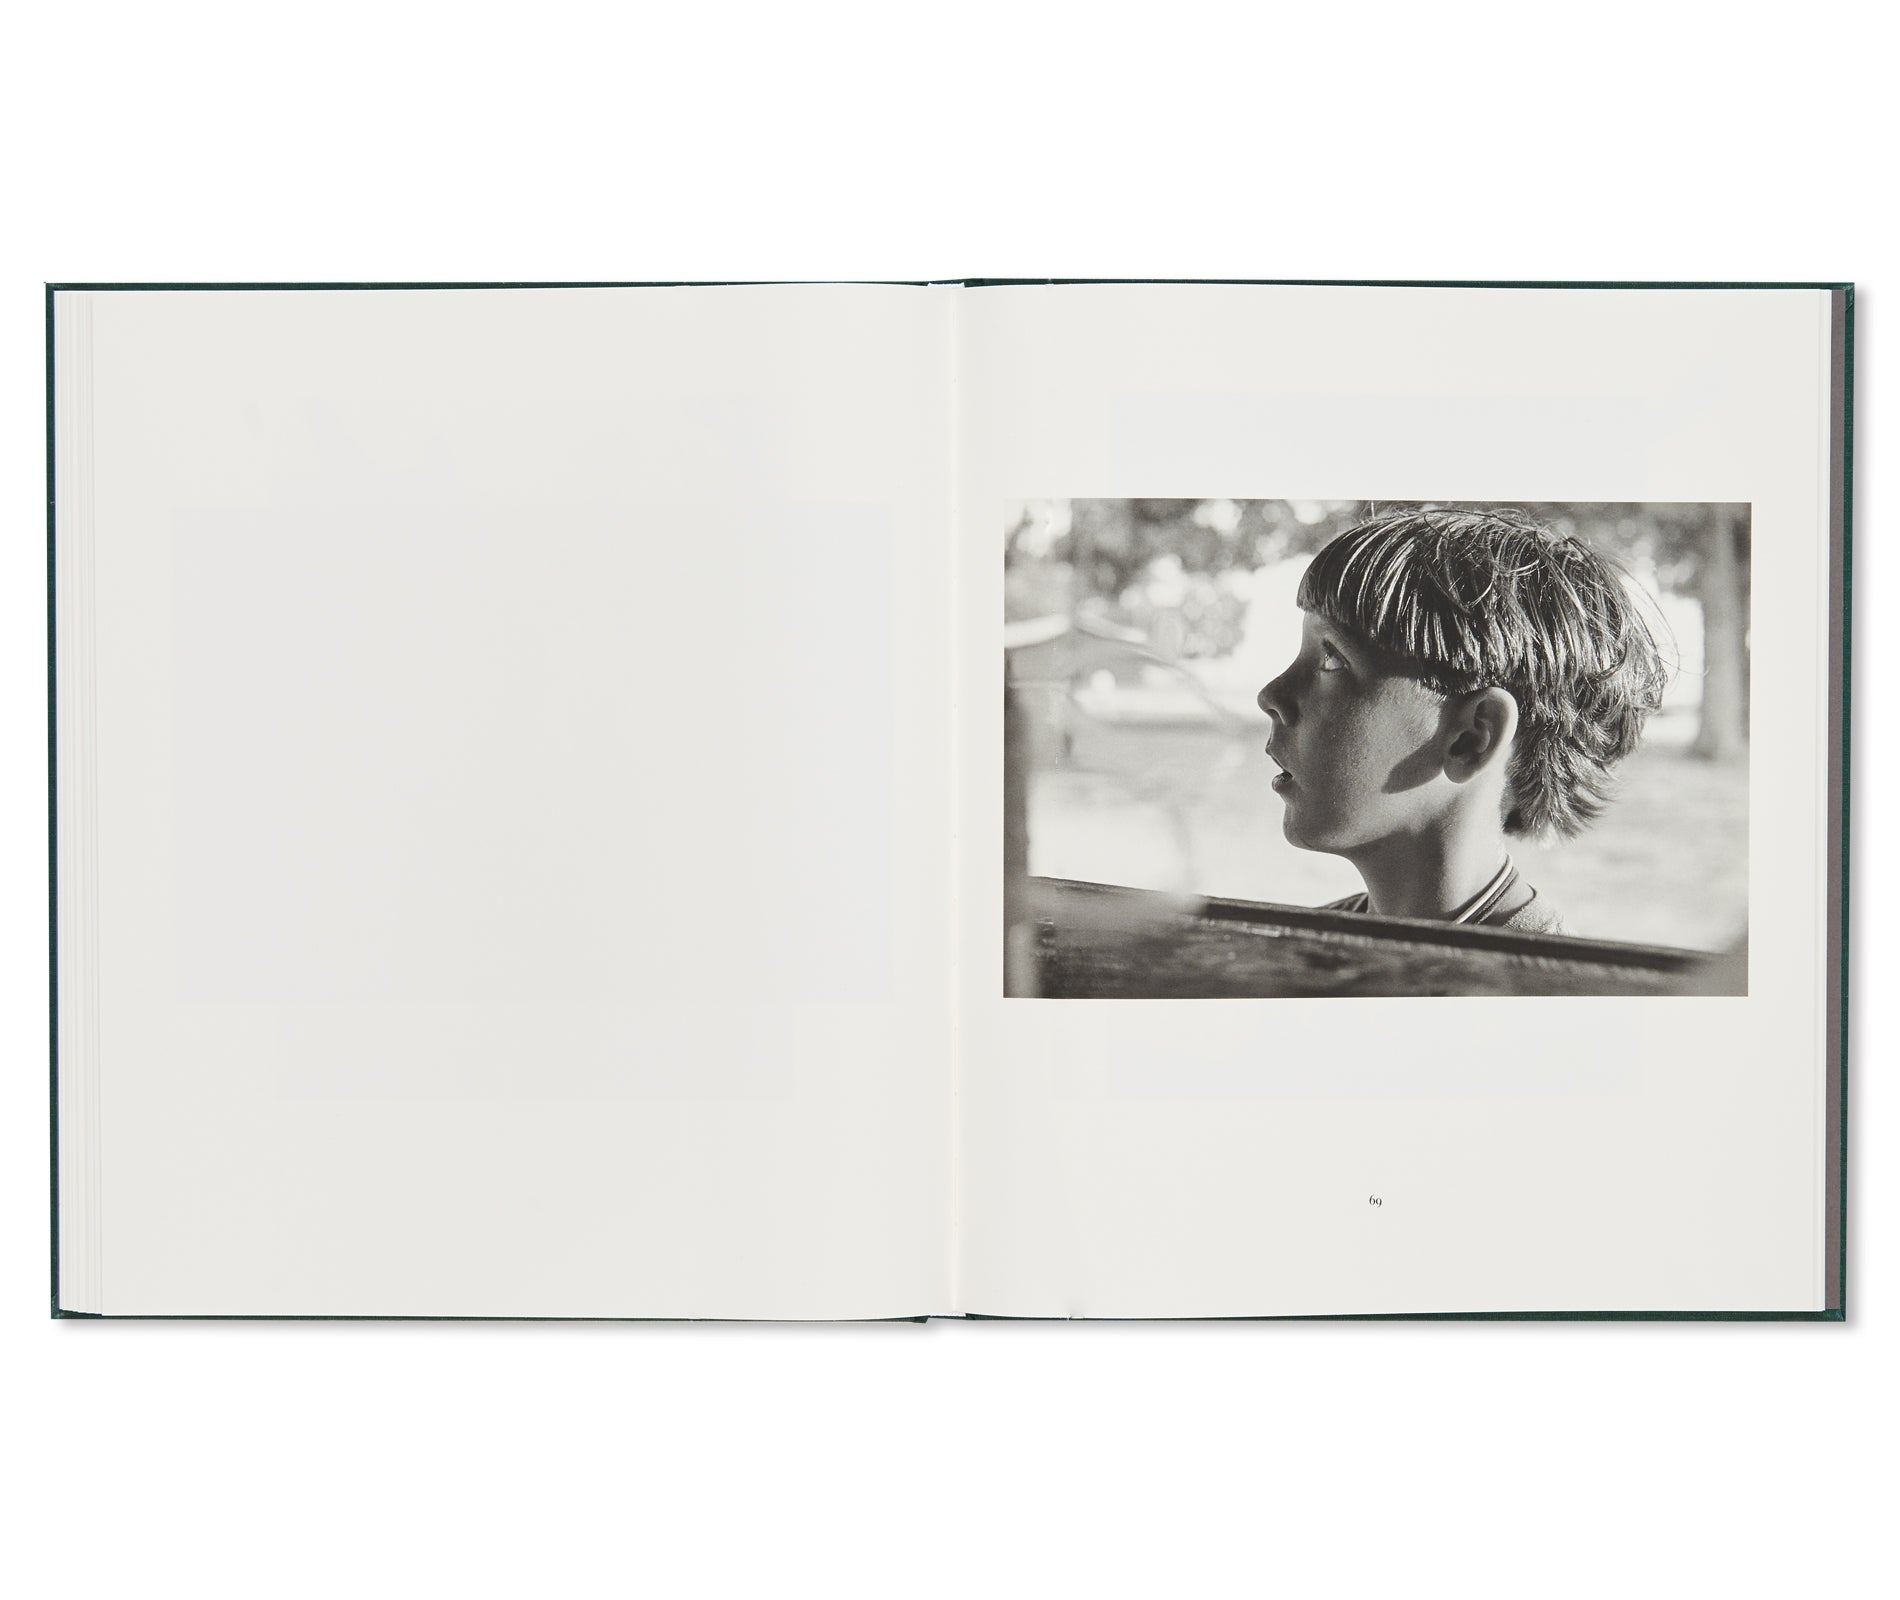 SUMMER CAMP by Mark Steinmetz [SPECIAL EDITION]